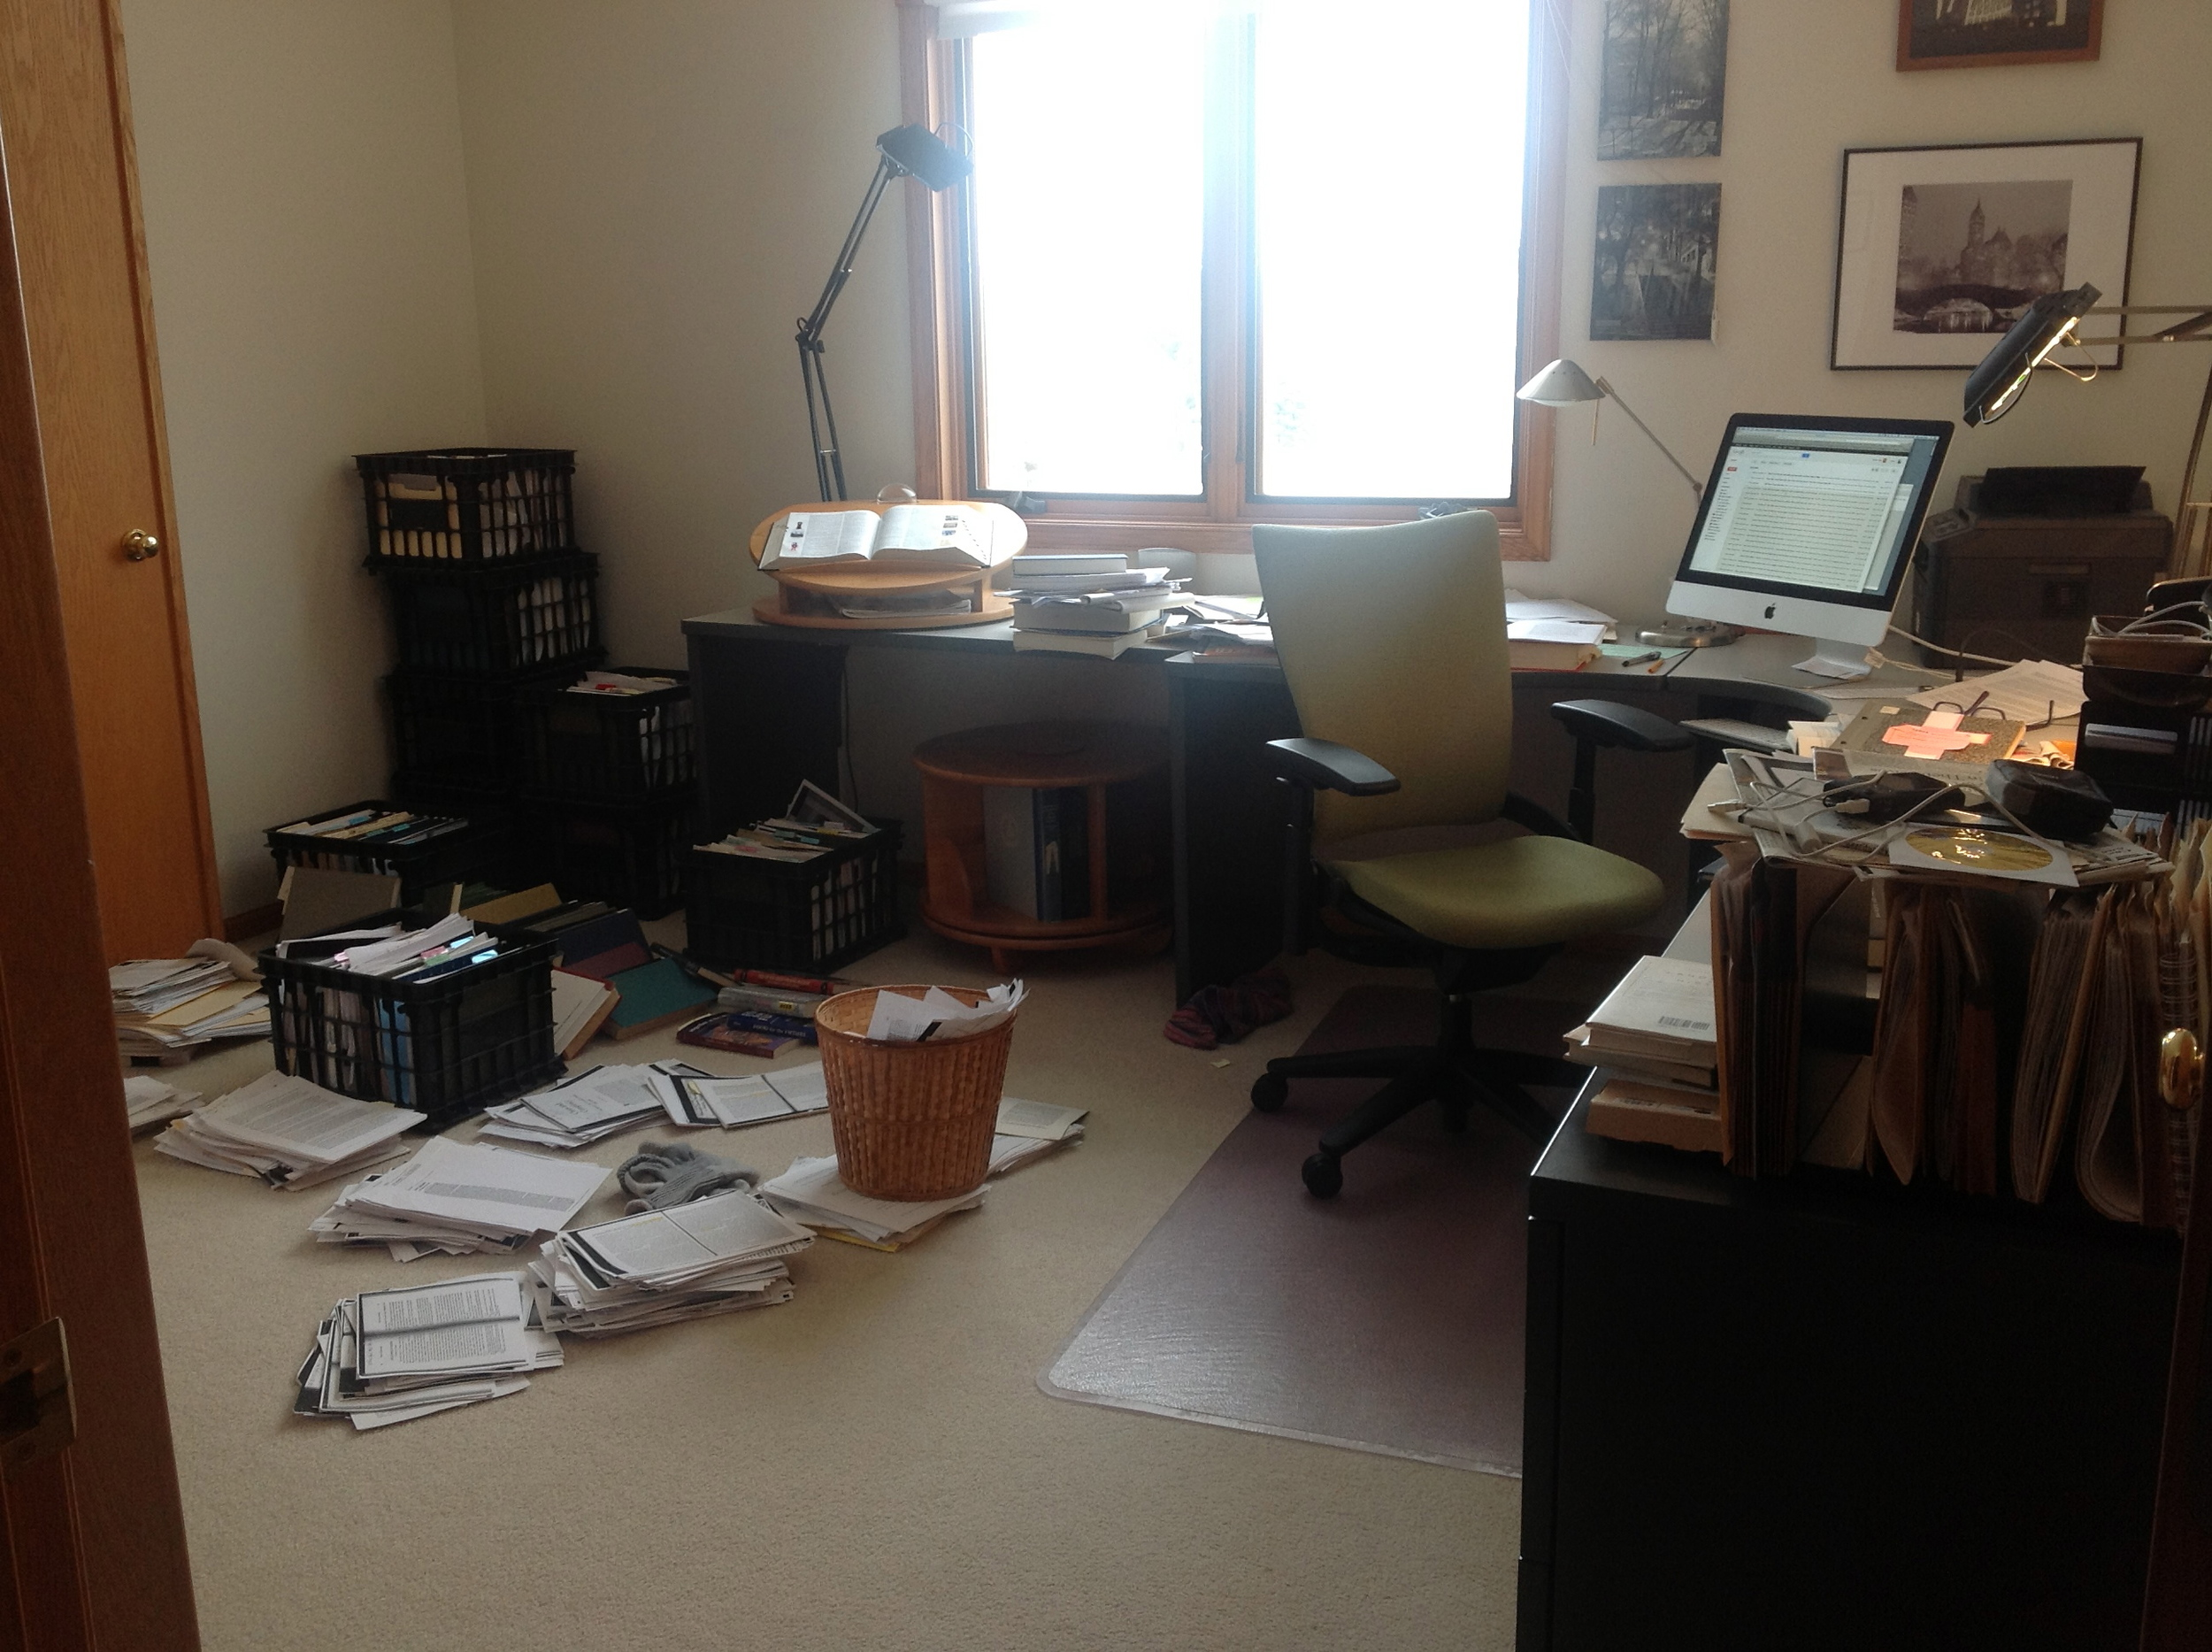 Warning: Should you decide to write a book, your office will likely look like this. And so will your brain.